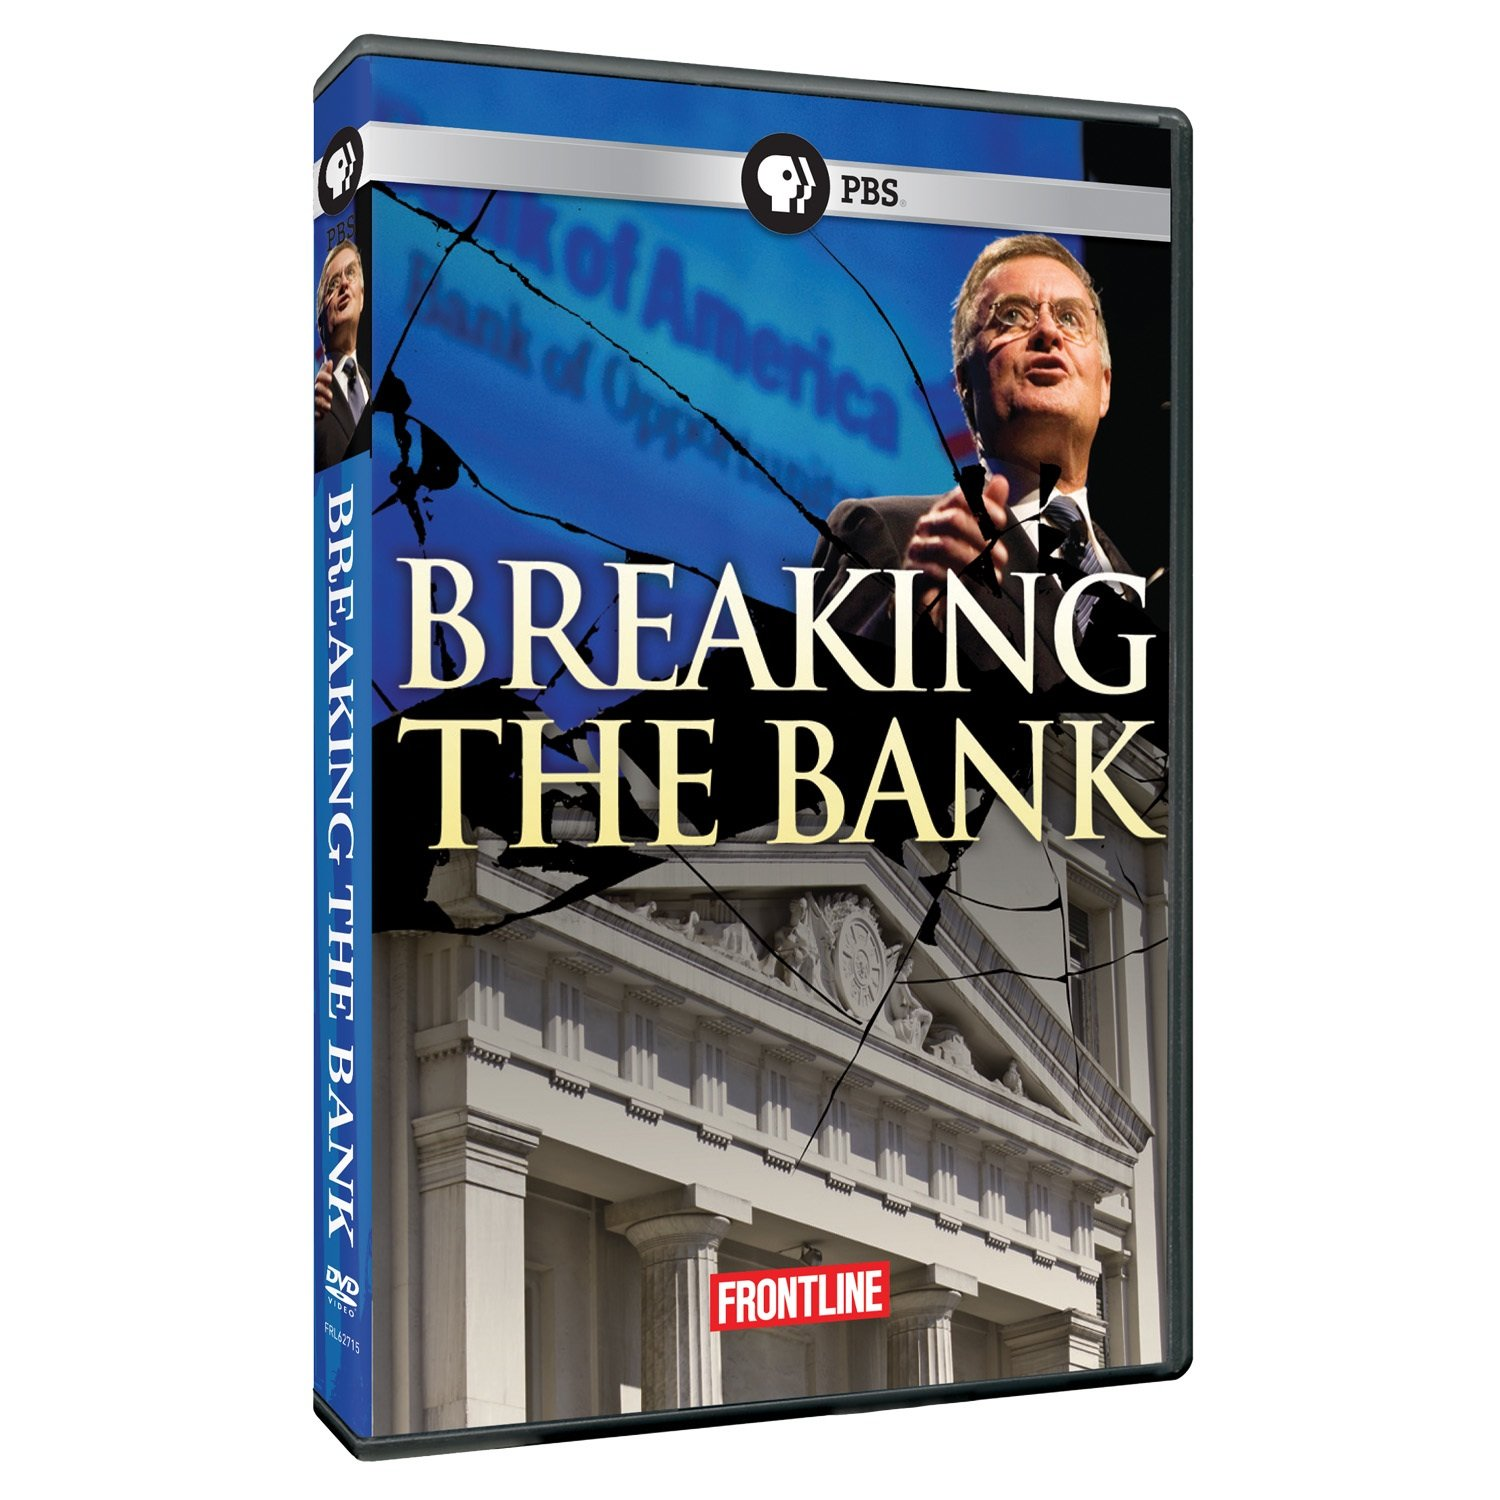 Frontline: Breaking the Bank by PBS